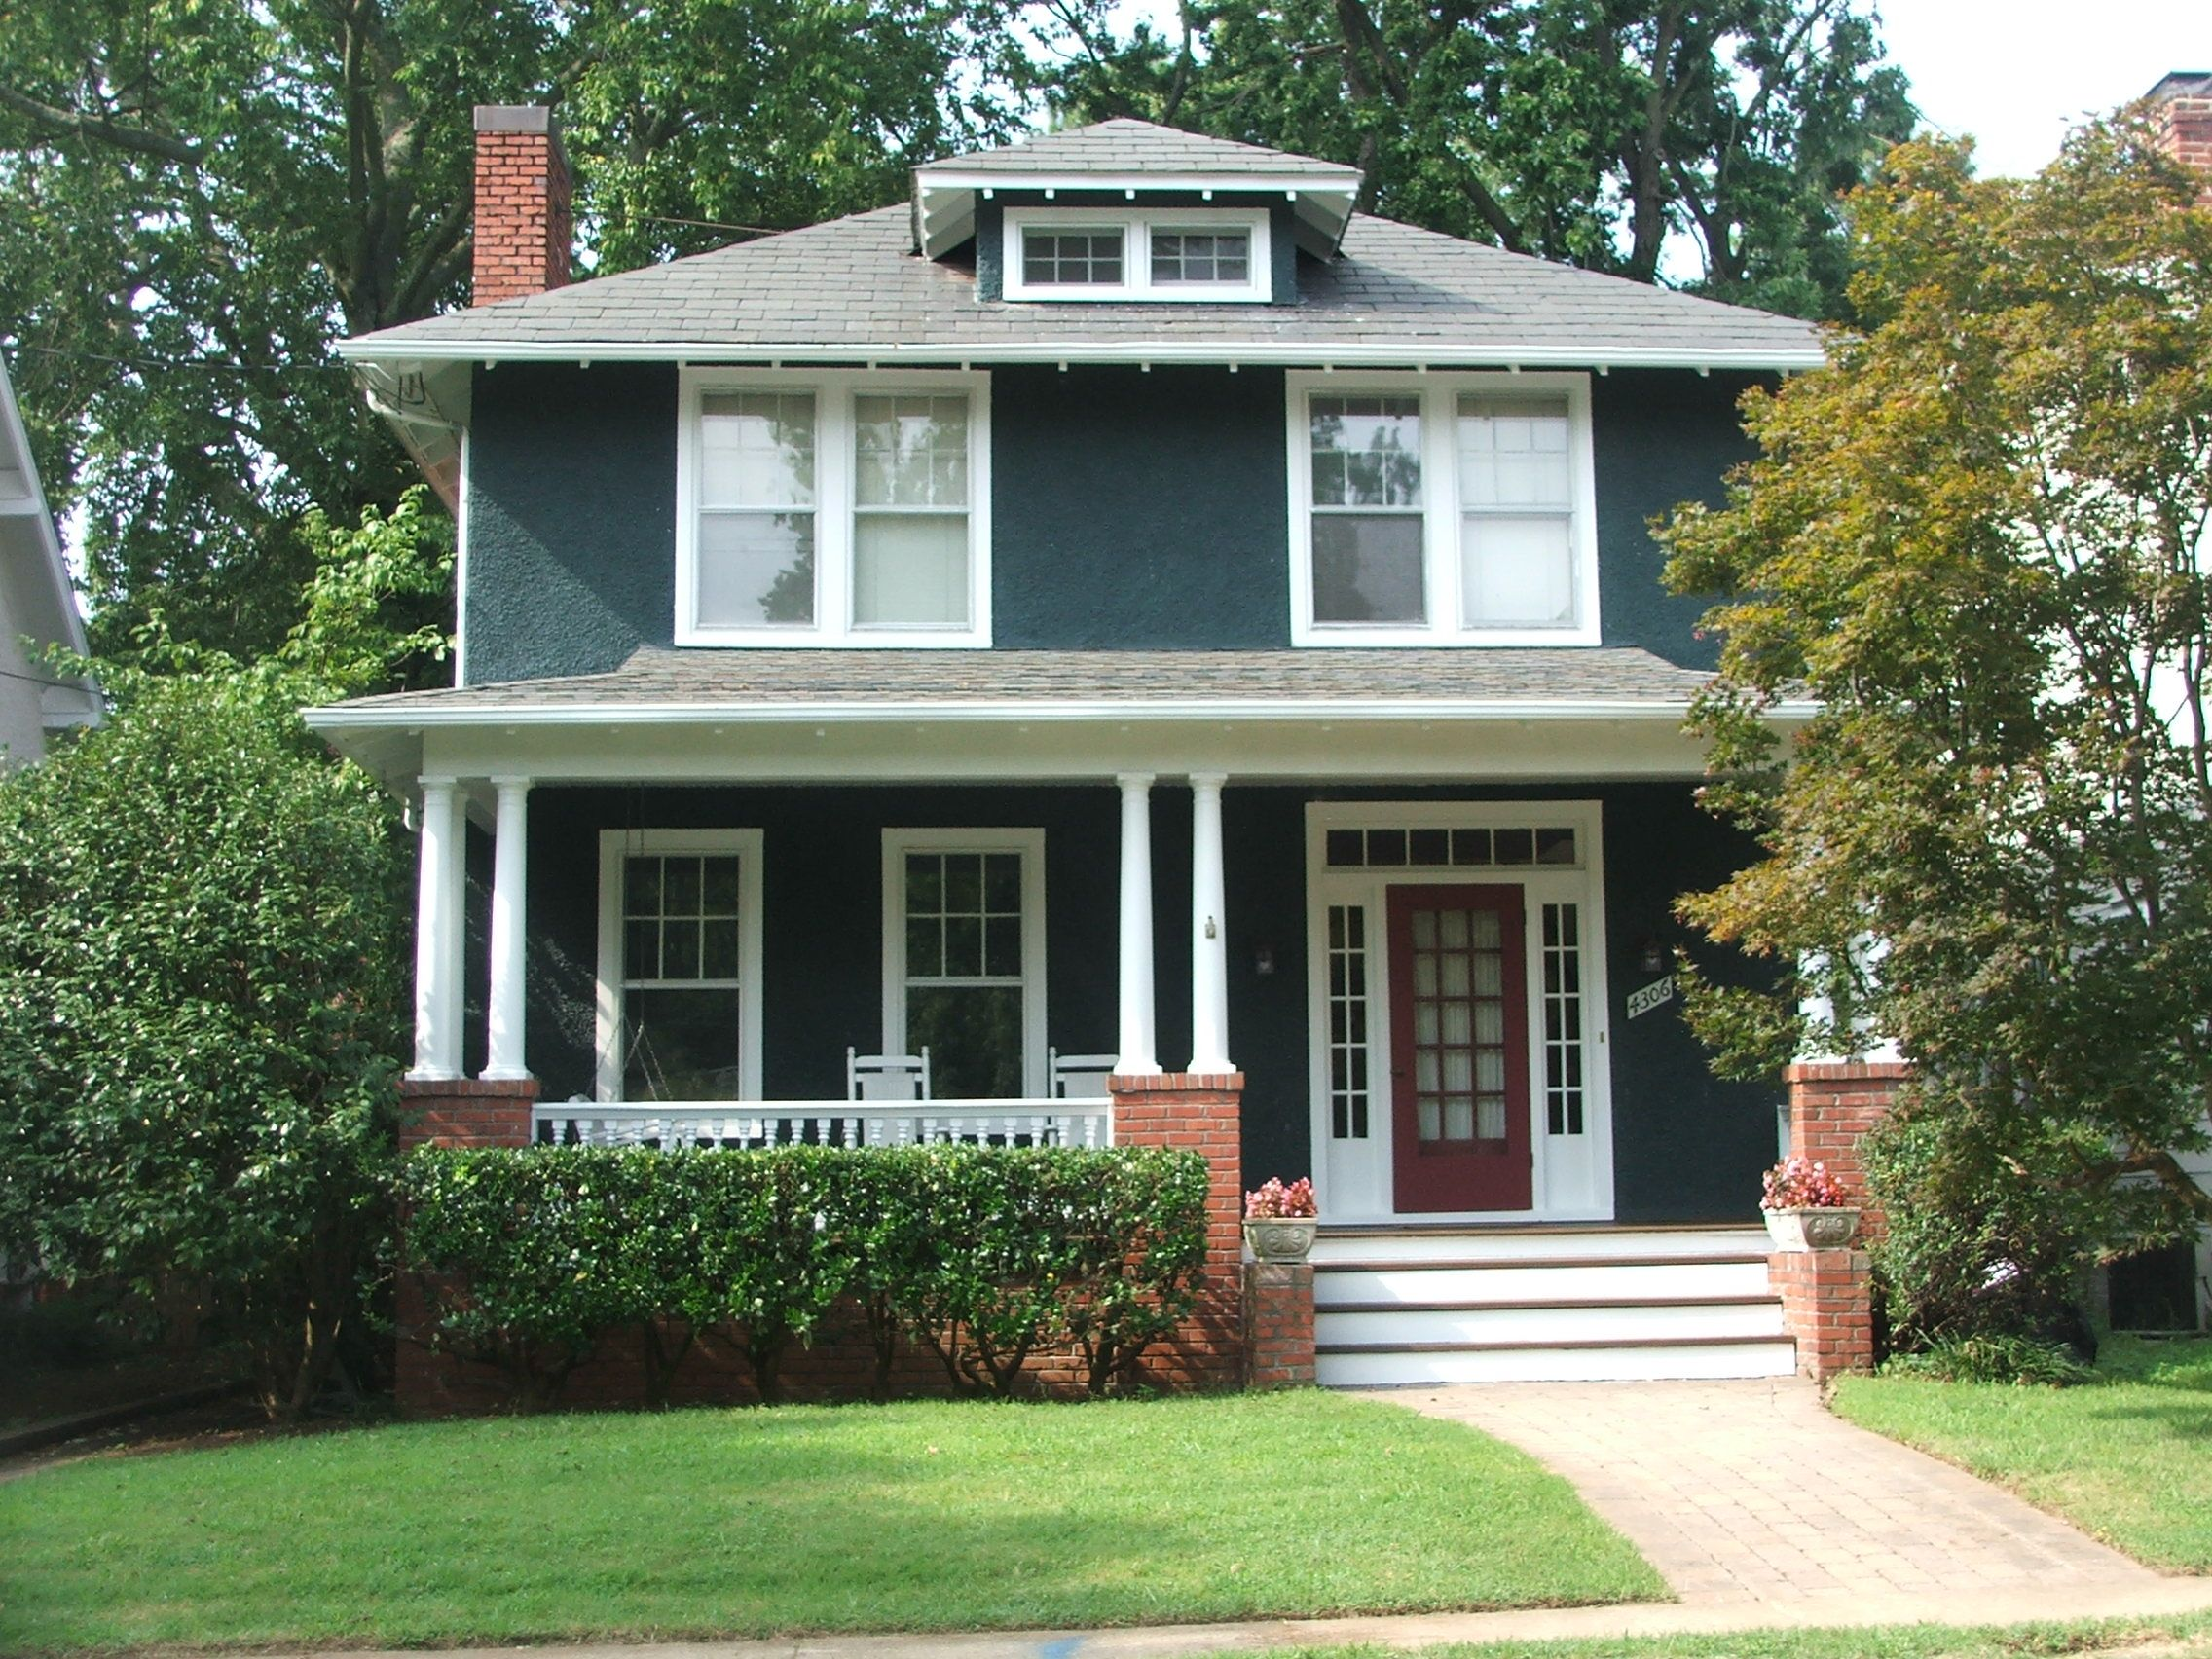 Diy idea for old suitcase american houses front porches for American classic house style